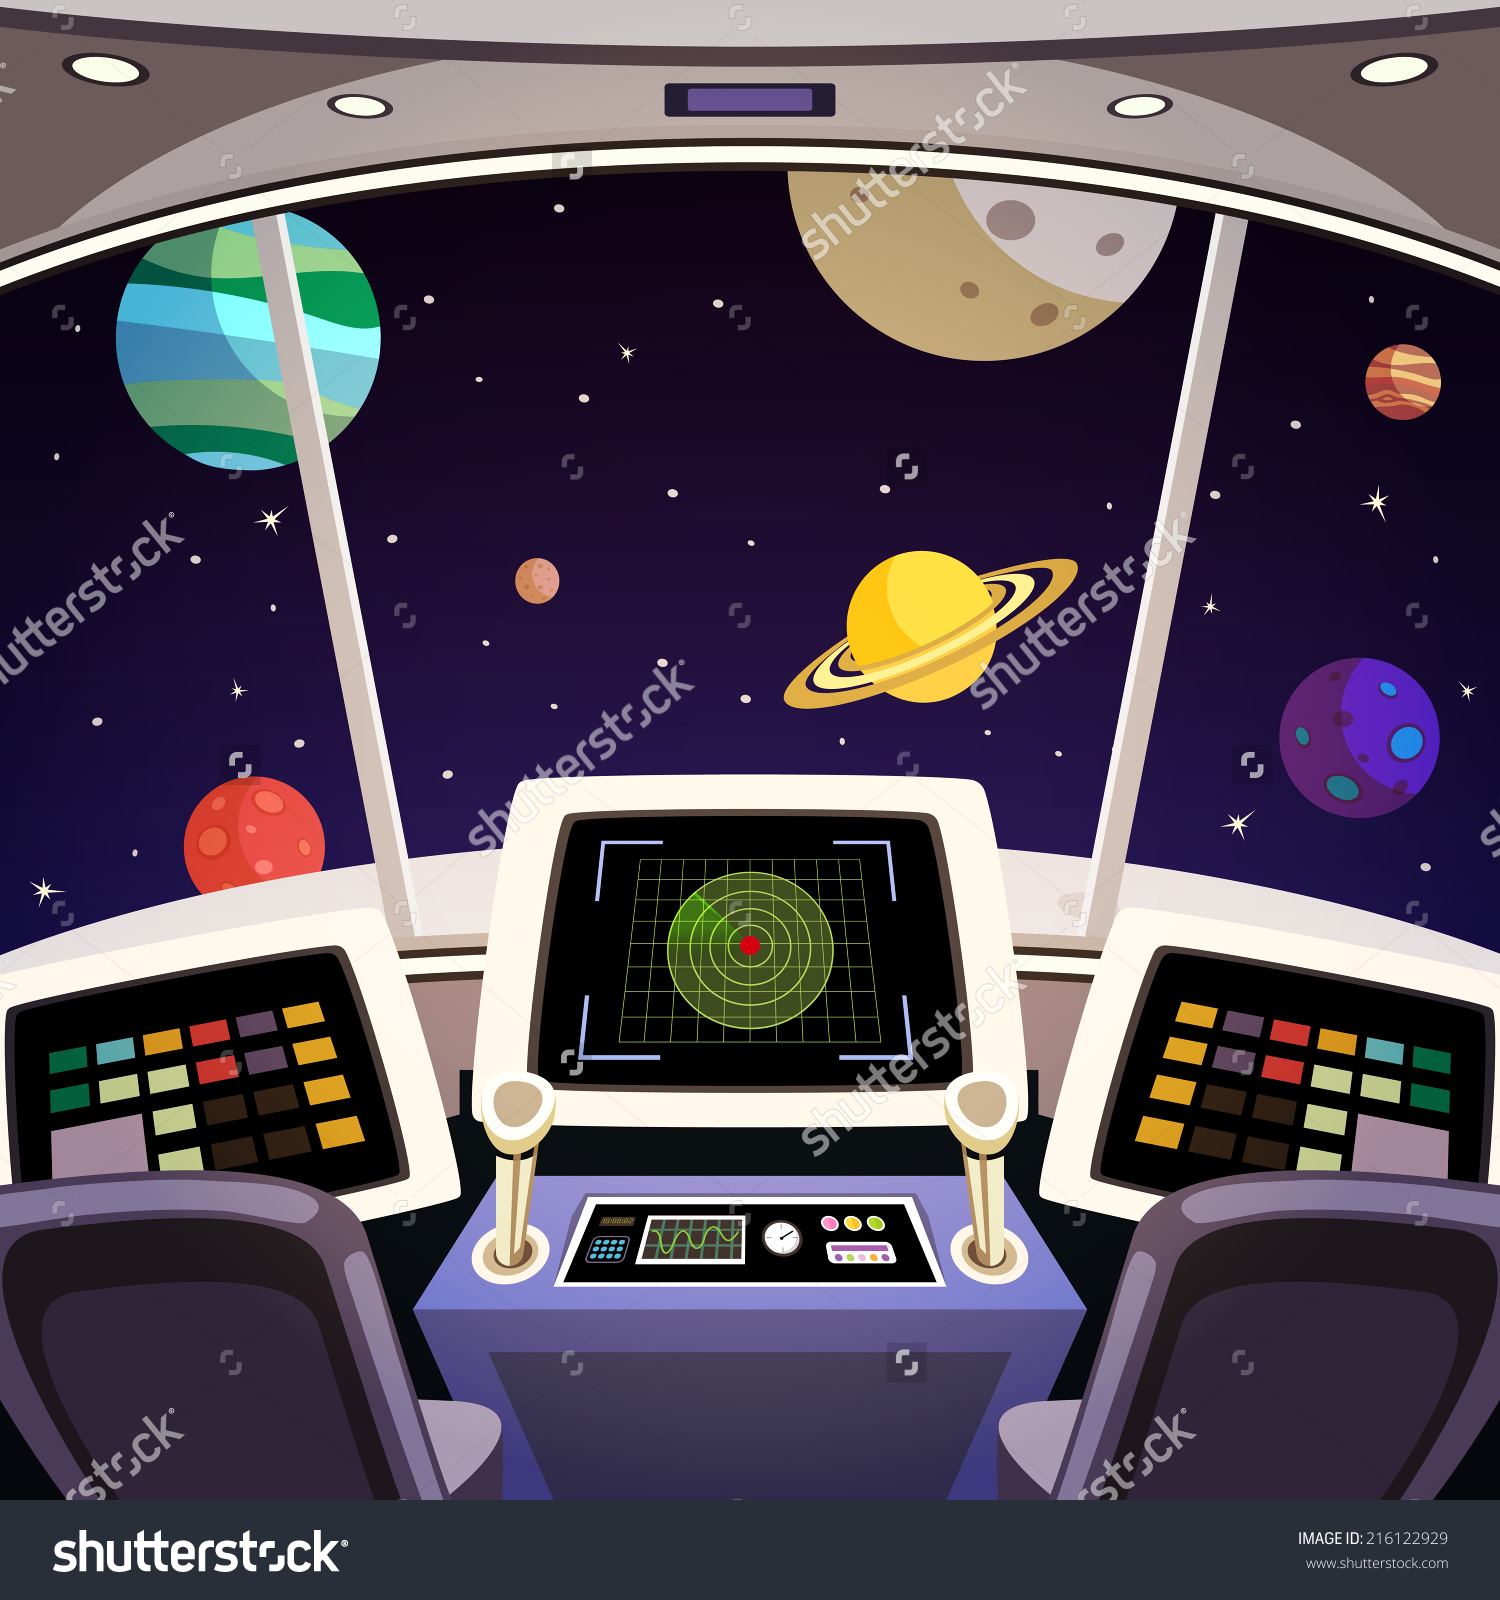 Space shuttle cockpit clipart.